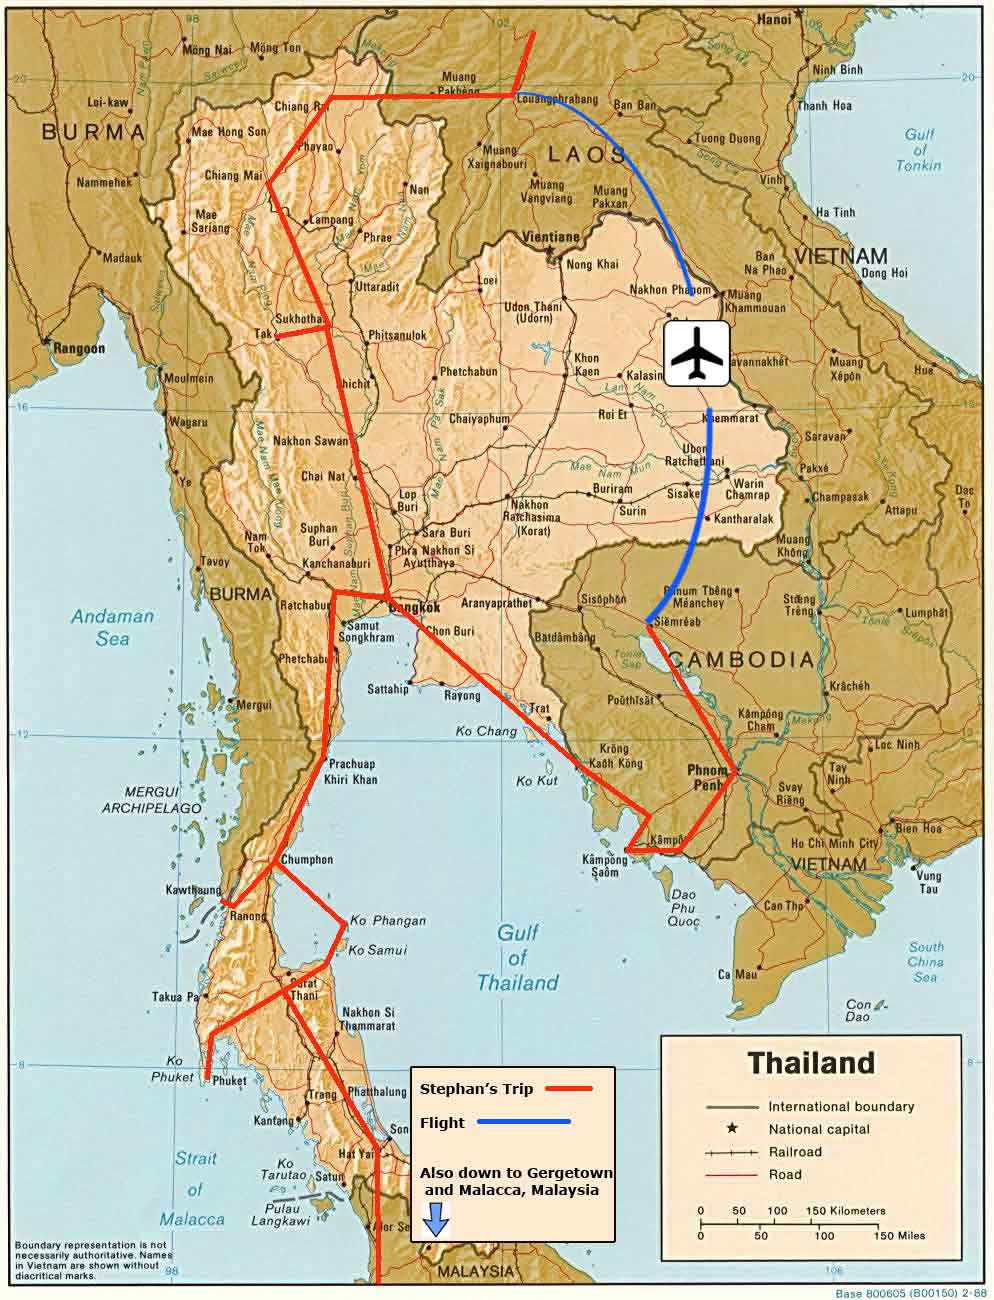 My Travel Route in Indochina